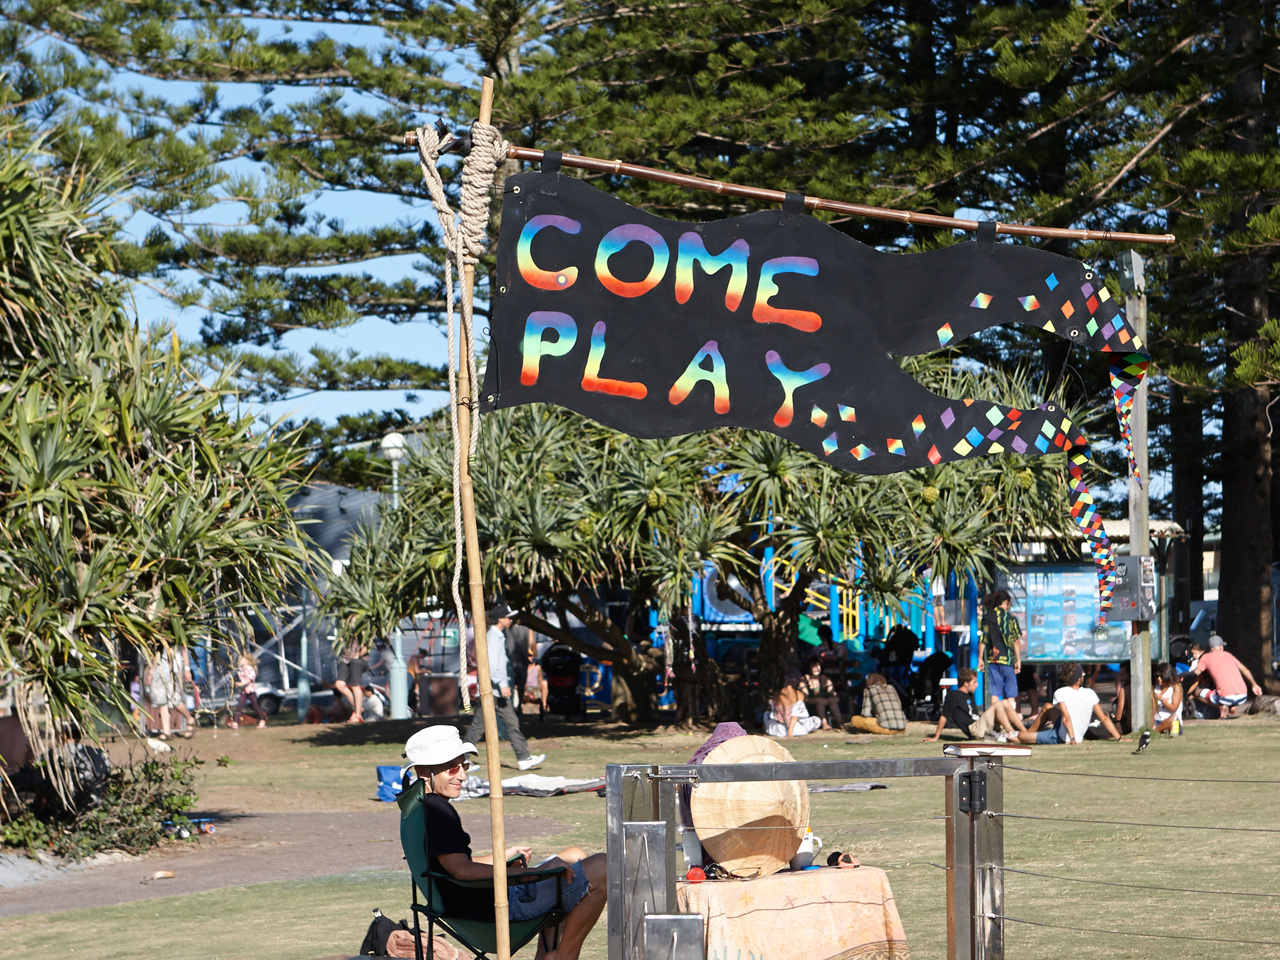 The Foodie Playground in Byron Bay